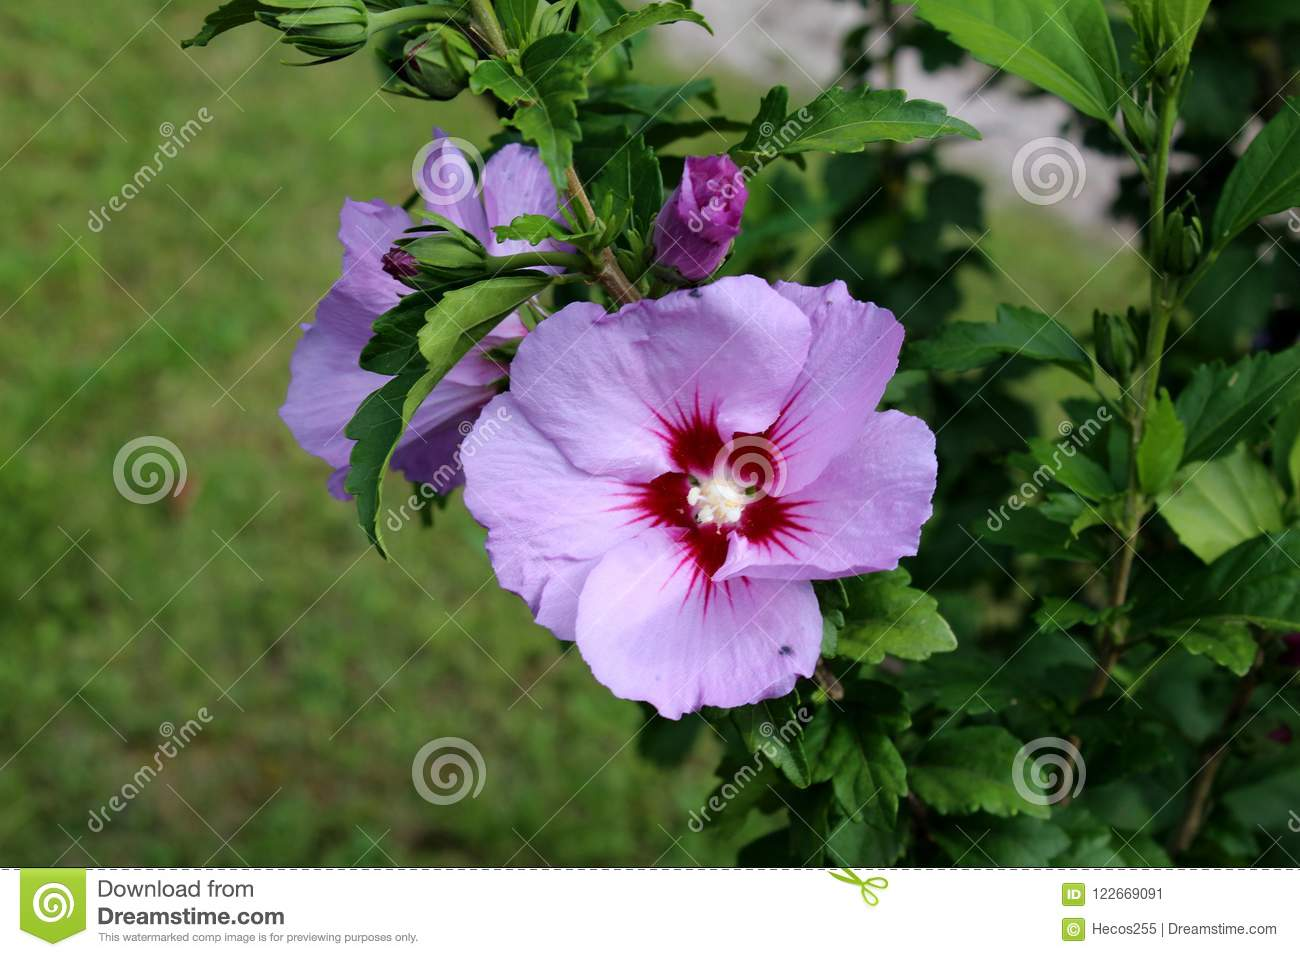 Hibiscus Syriacus Or Rose Of Sharon Flowering Plant With Blooming